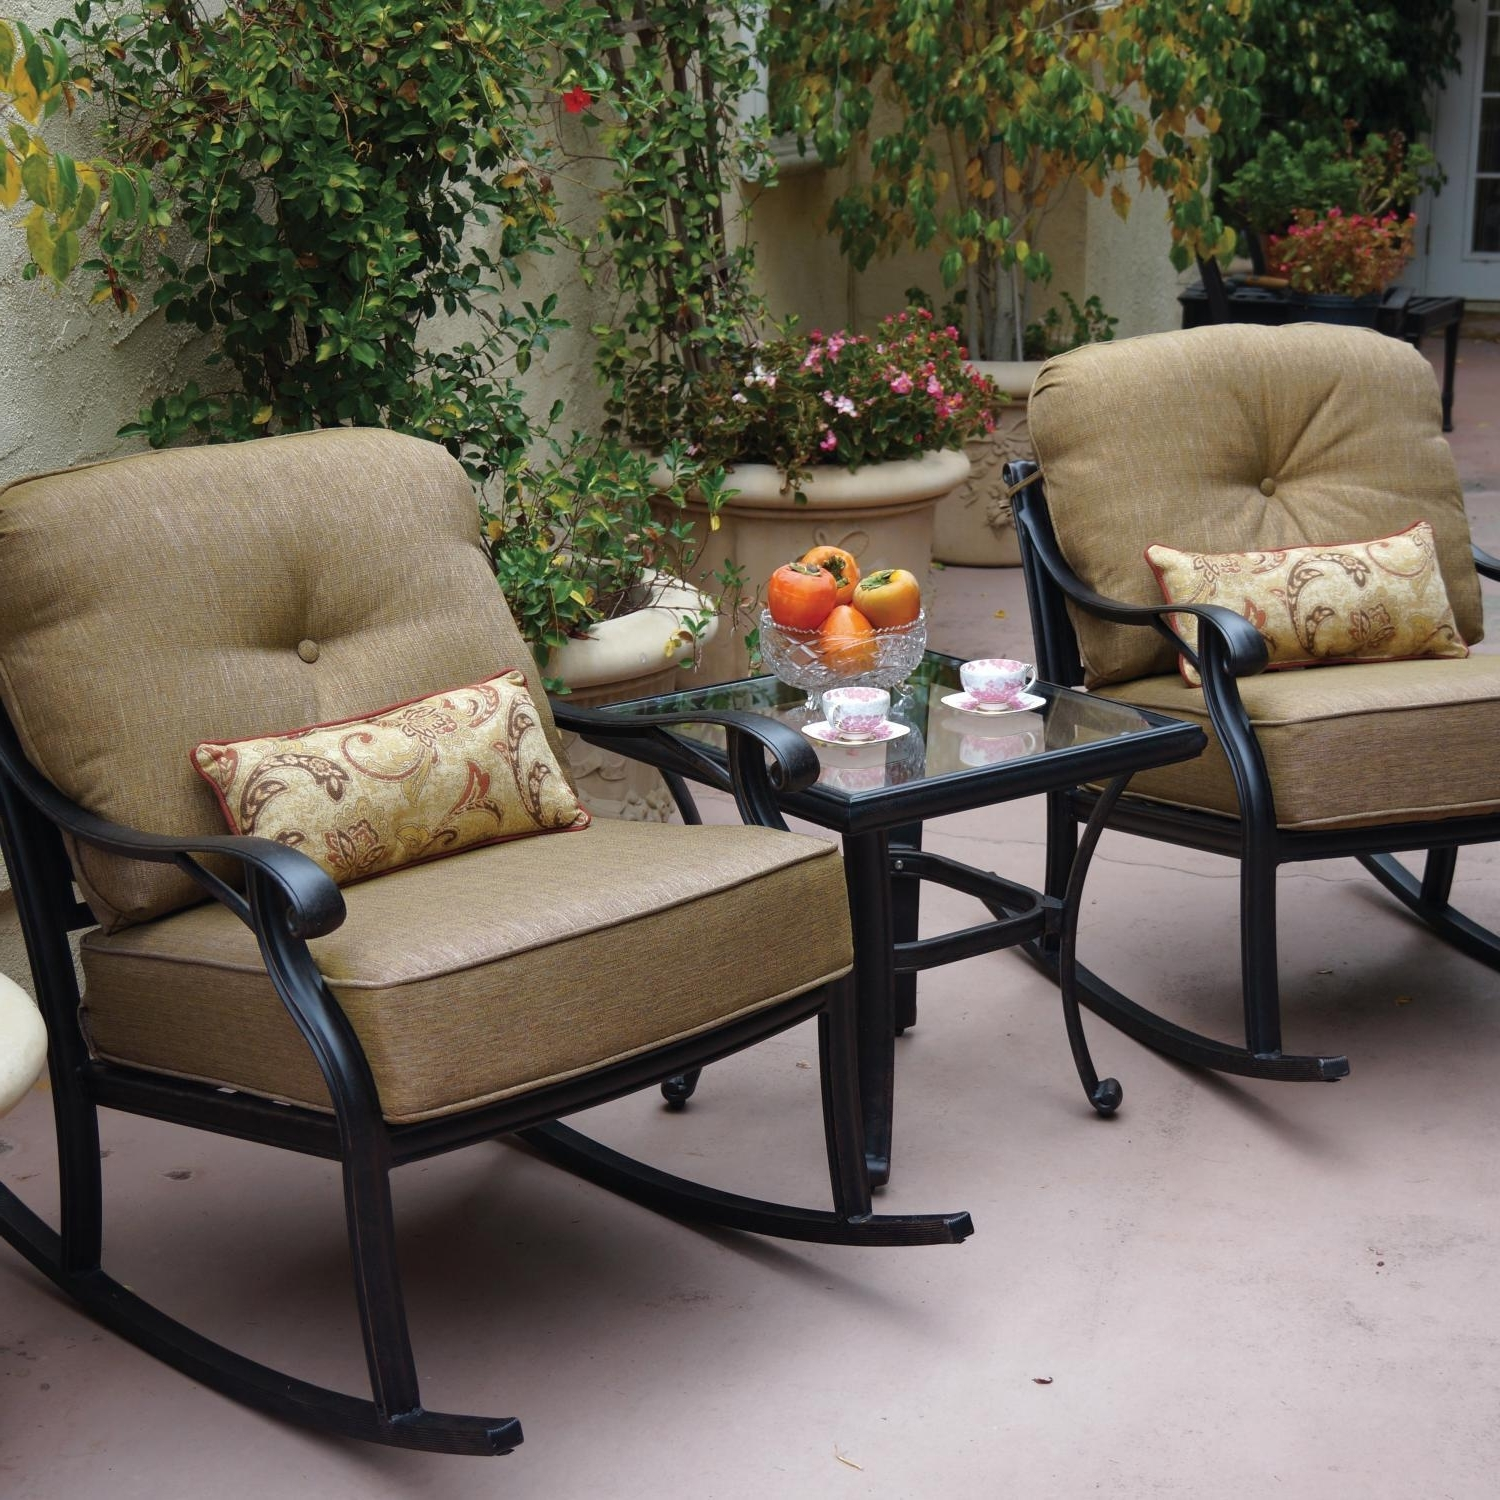 Widely Used Aluminum Patio Conversation Sets Intended For Darlee Nassau 3 Piece Cast Aluminum Patio Conversation Seating Set (View 20 of 20)